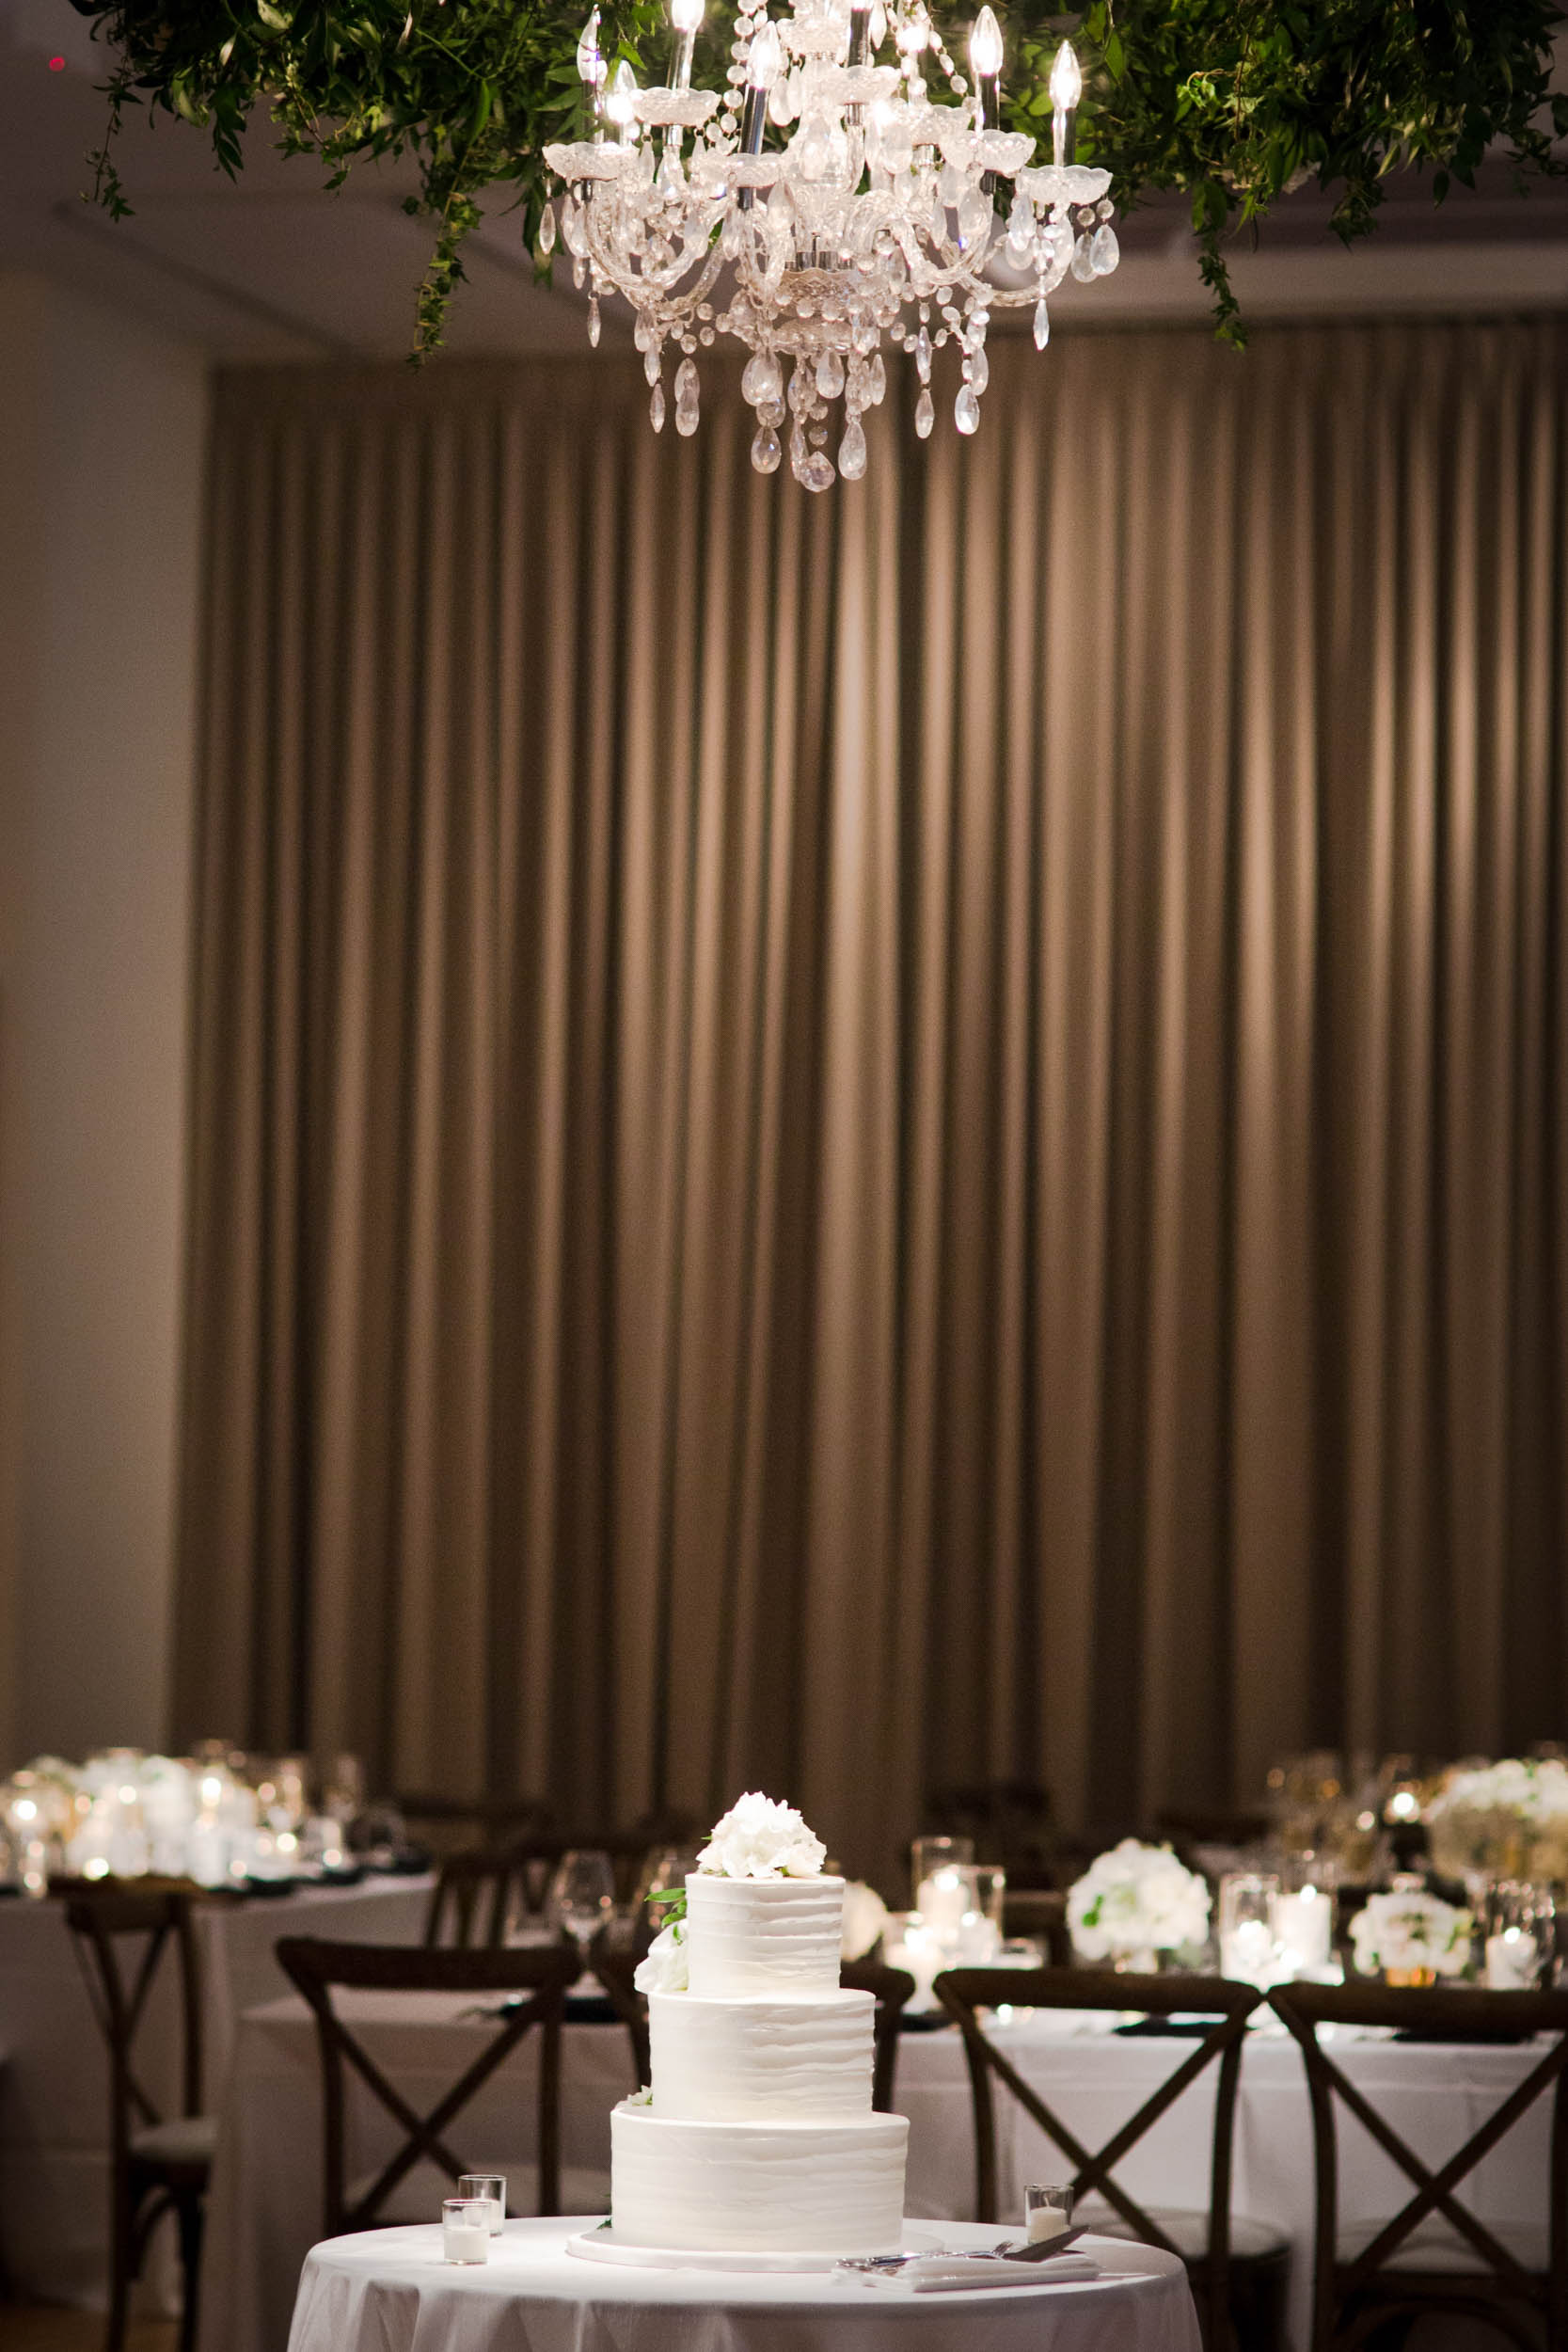 This classic white wedding cake at the Ivy Room in Chicago matched the elegant decor by A Stem Above for the reception.